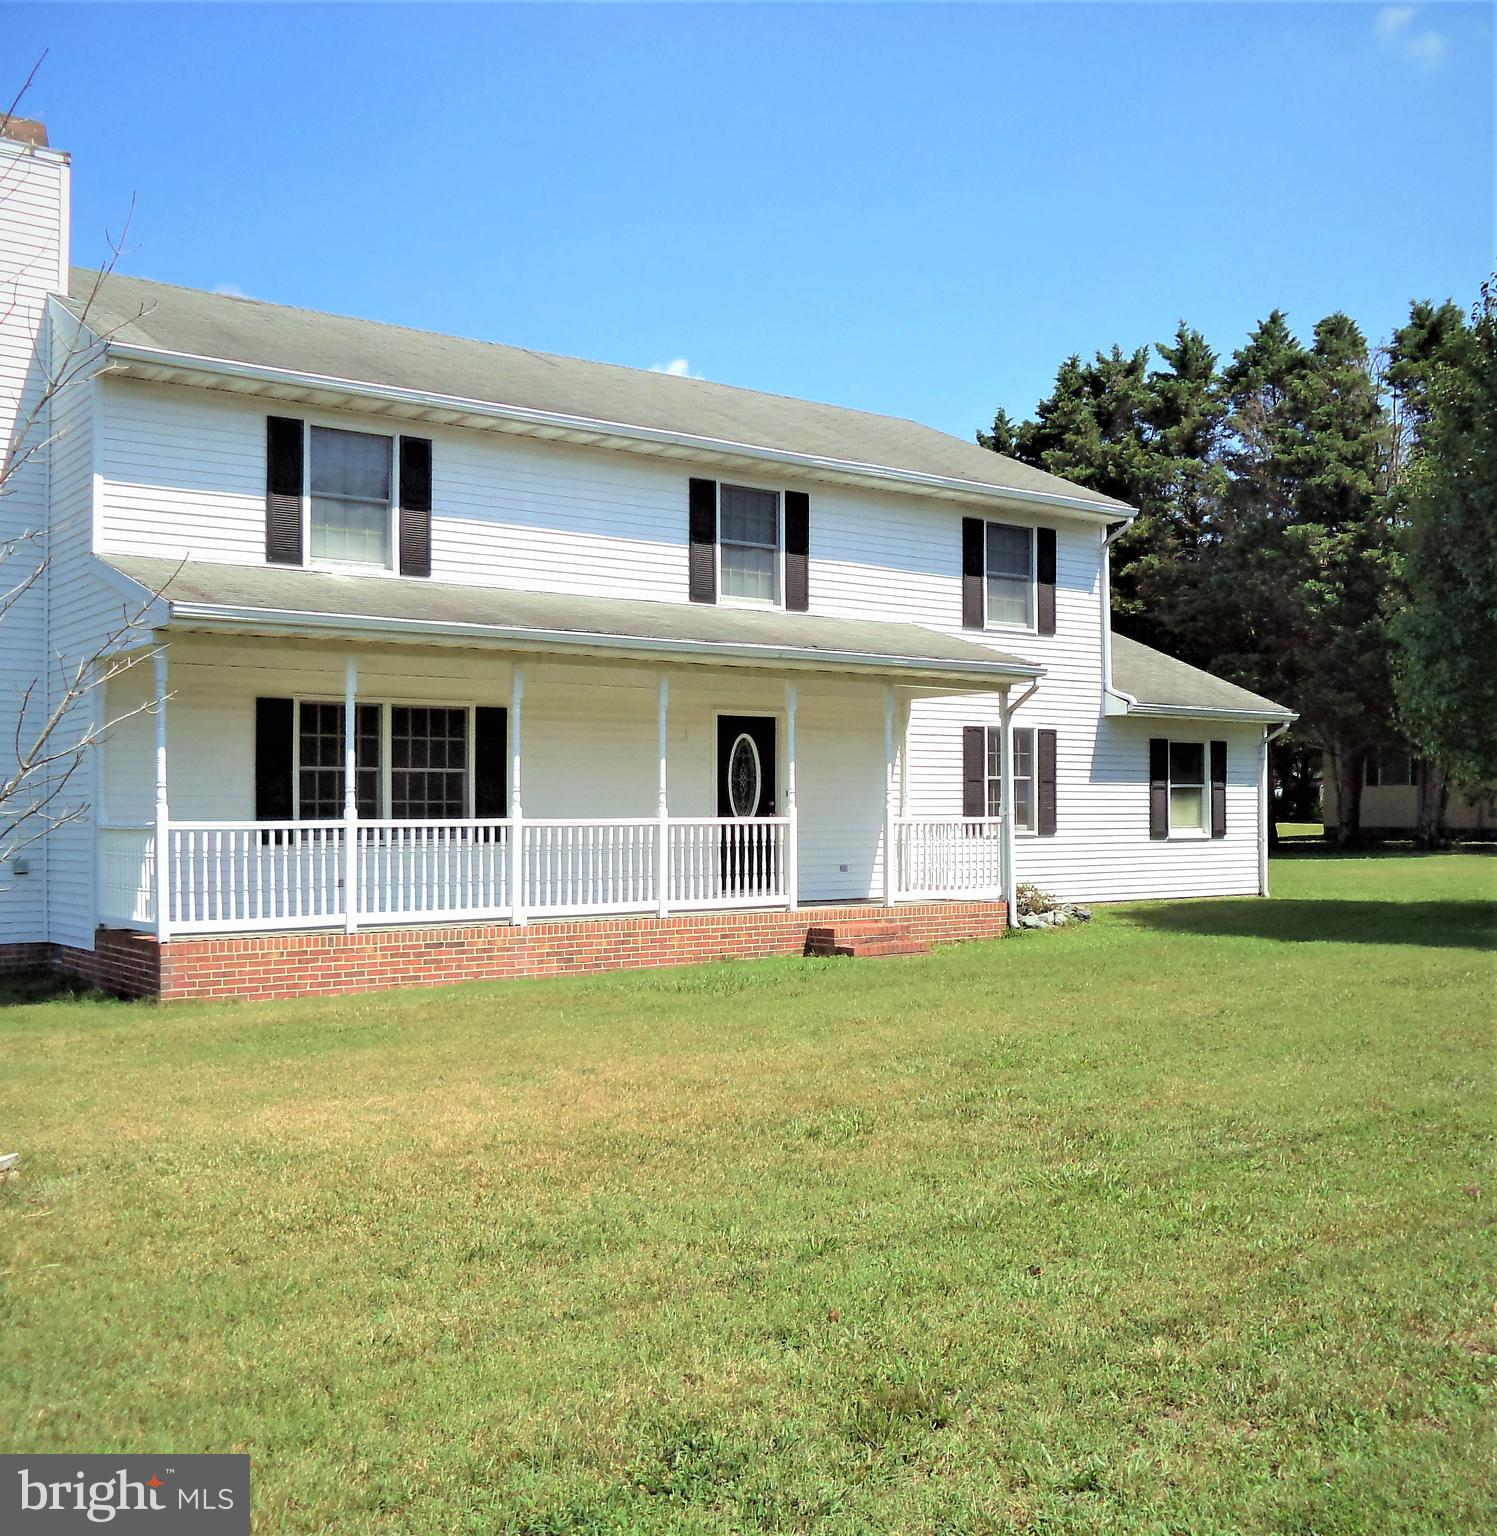 6291 Feather Heights Dr, Salisbury, MD, 21801